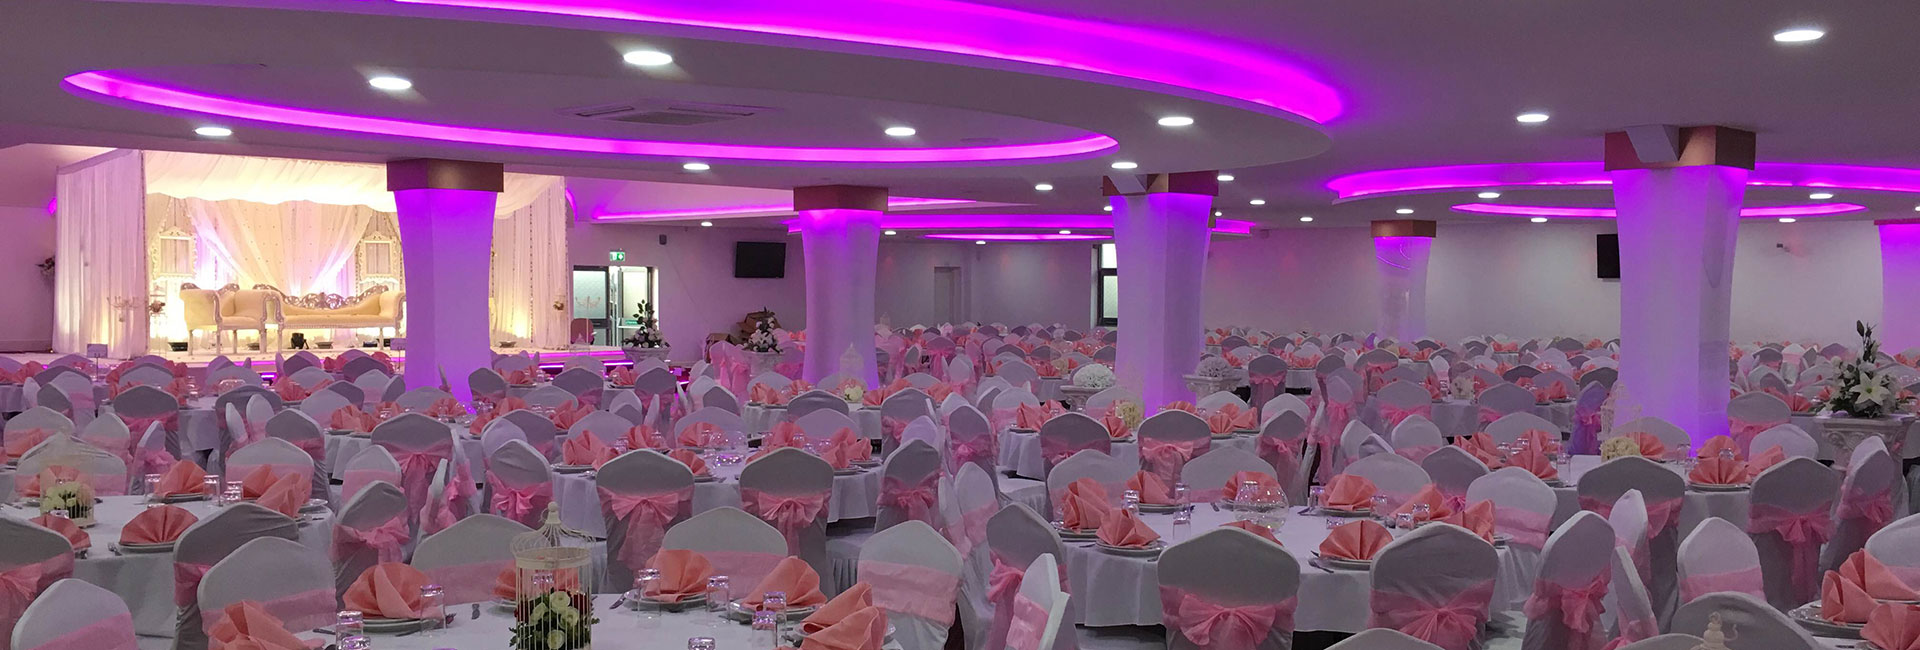 Al miraj banqueting asian wedding venue birminhgam asian wedding hall banner junglespirit Gallery